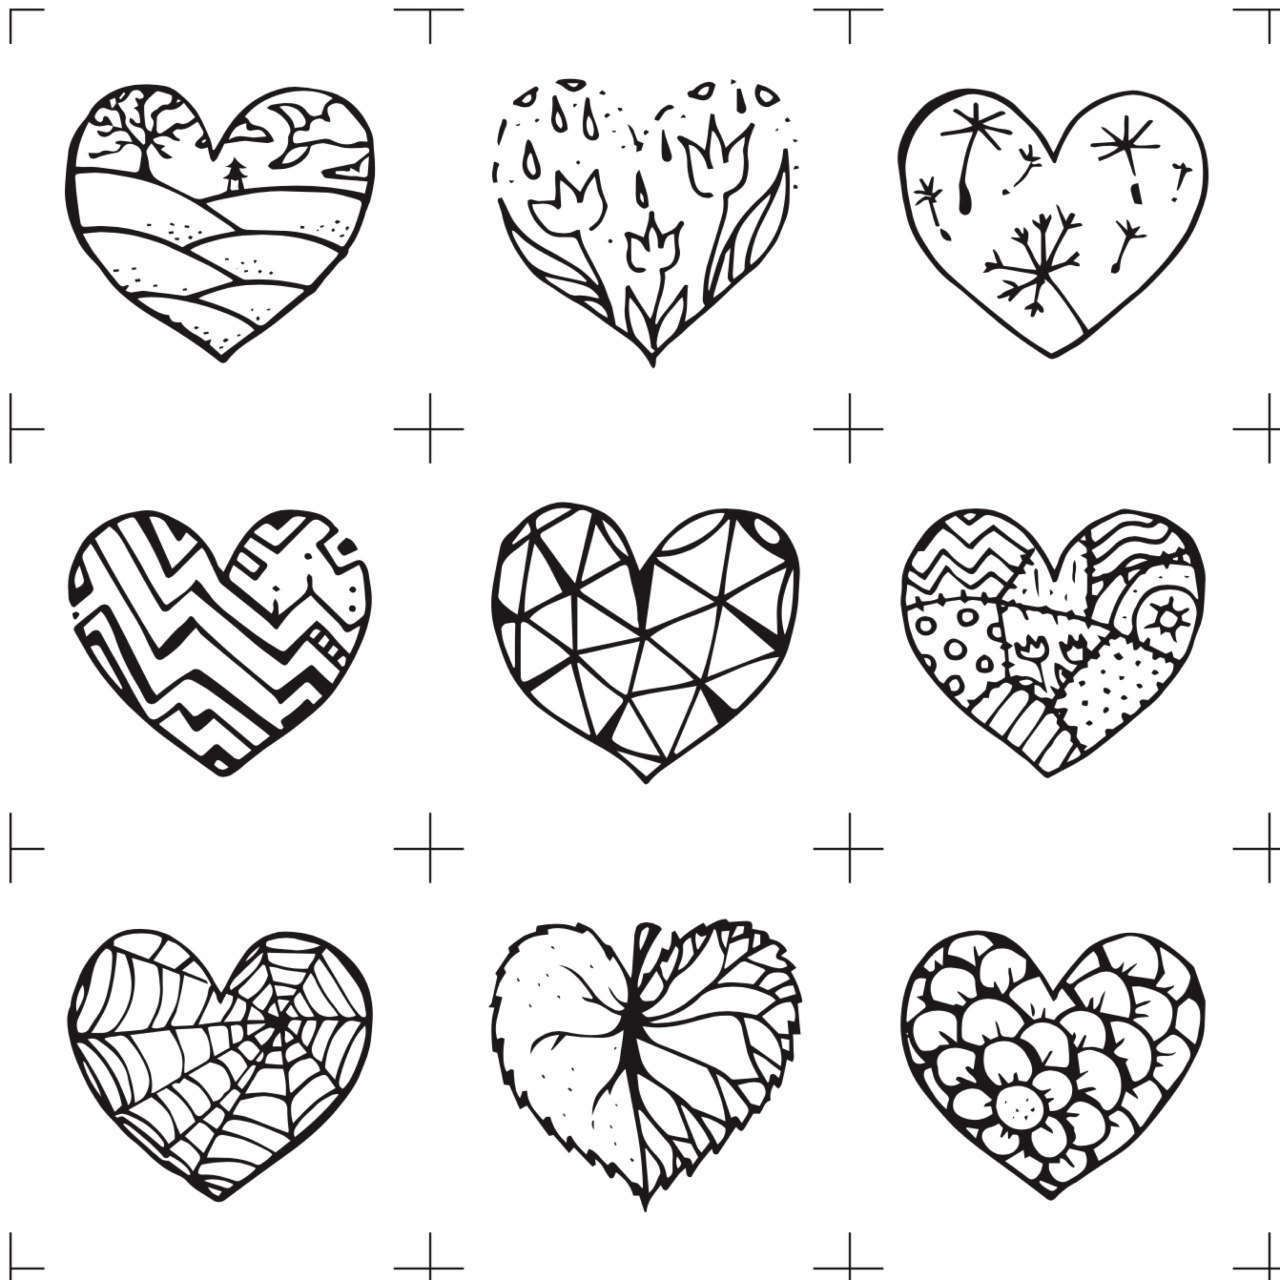 Color Me Hearts Memory Game Valentine Printable Diy Lover T Fancy Present Party Ideas Last